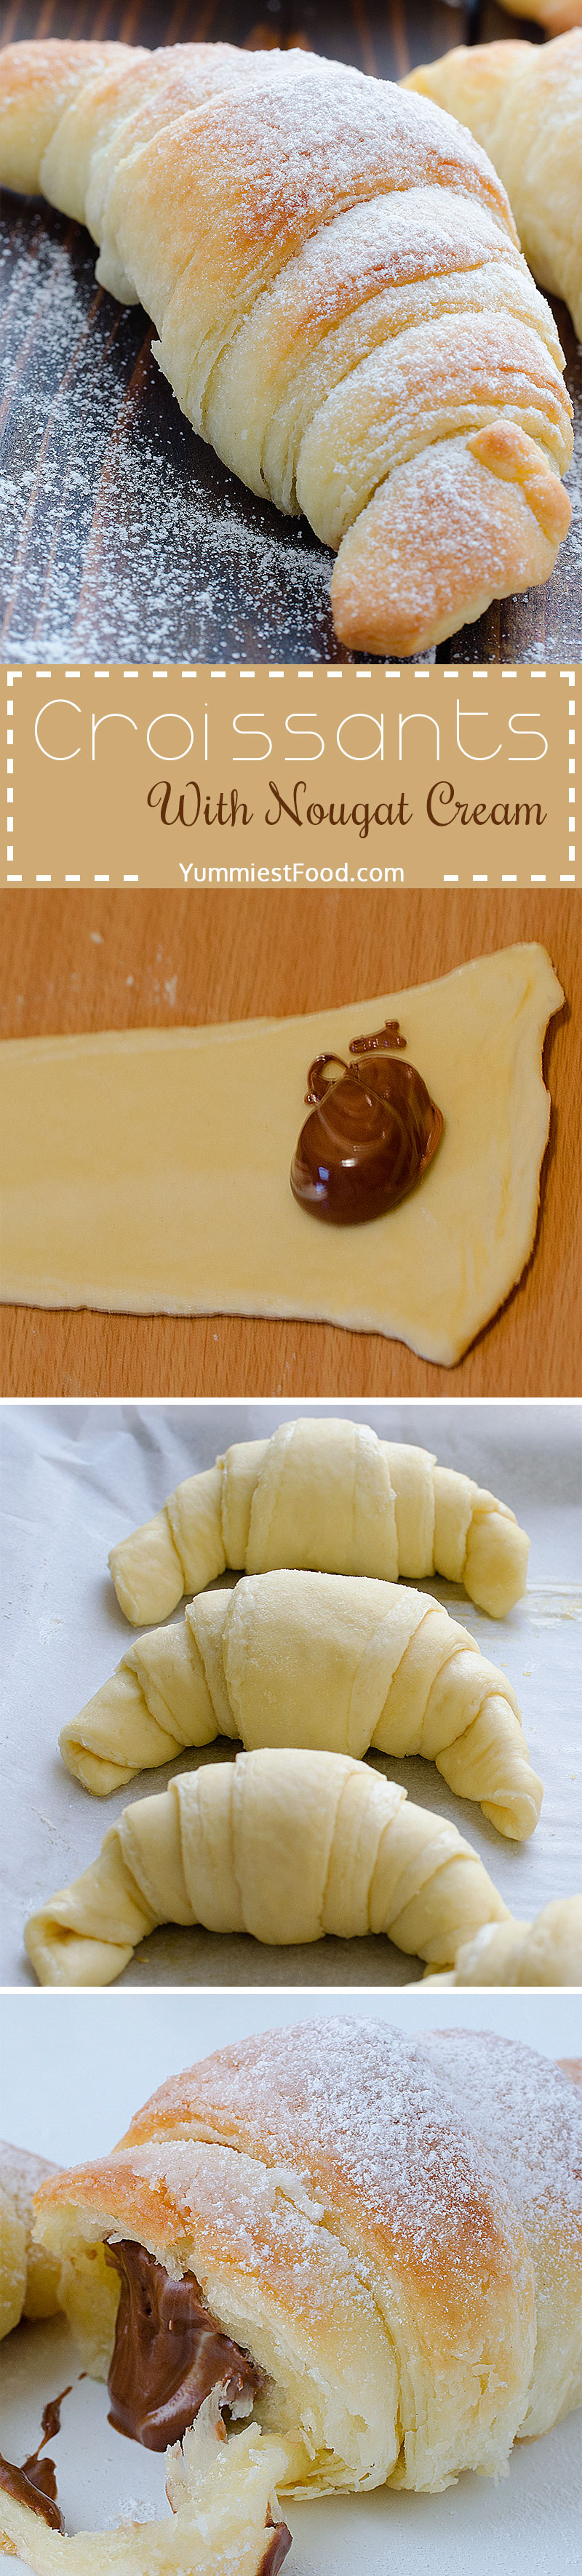 Croissants With Nougat Cream - I am sure that you haven't taste so soft, tasty and delicious puff pastry, so you must try to make these croissants with nougat cream